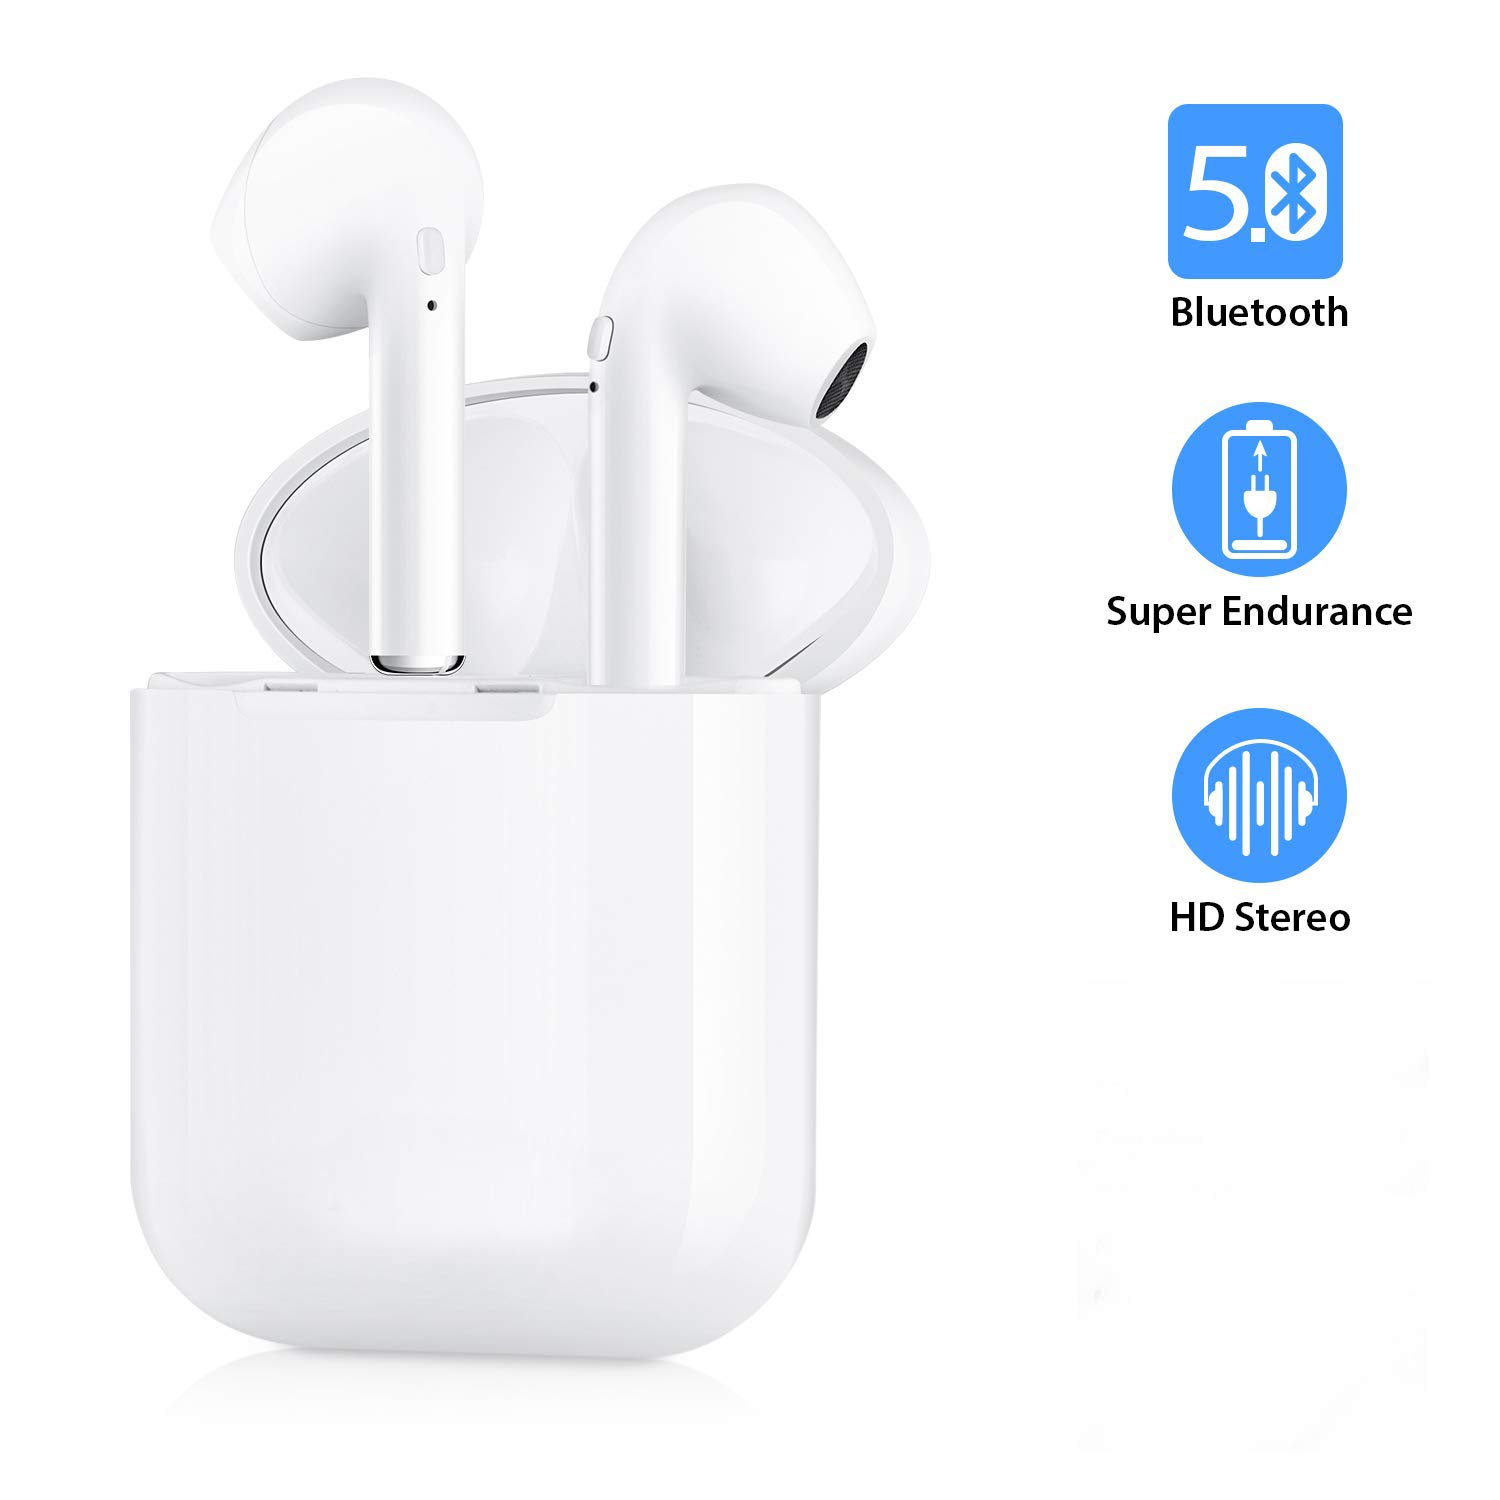 Bluetooth Headphones V5.0 in-Ear Headphones with Portable Power Box, Super Stereo Bluetooth in-Ear Headphones Compatible with All Smart Devices